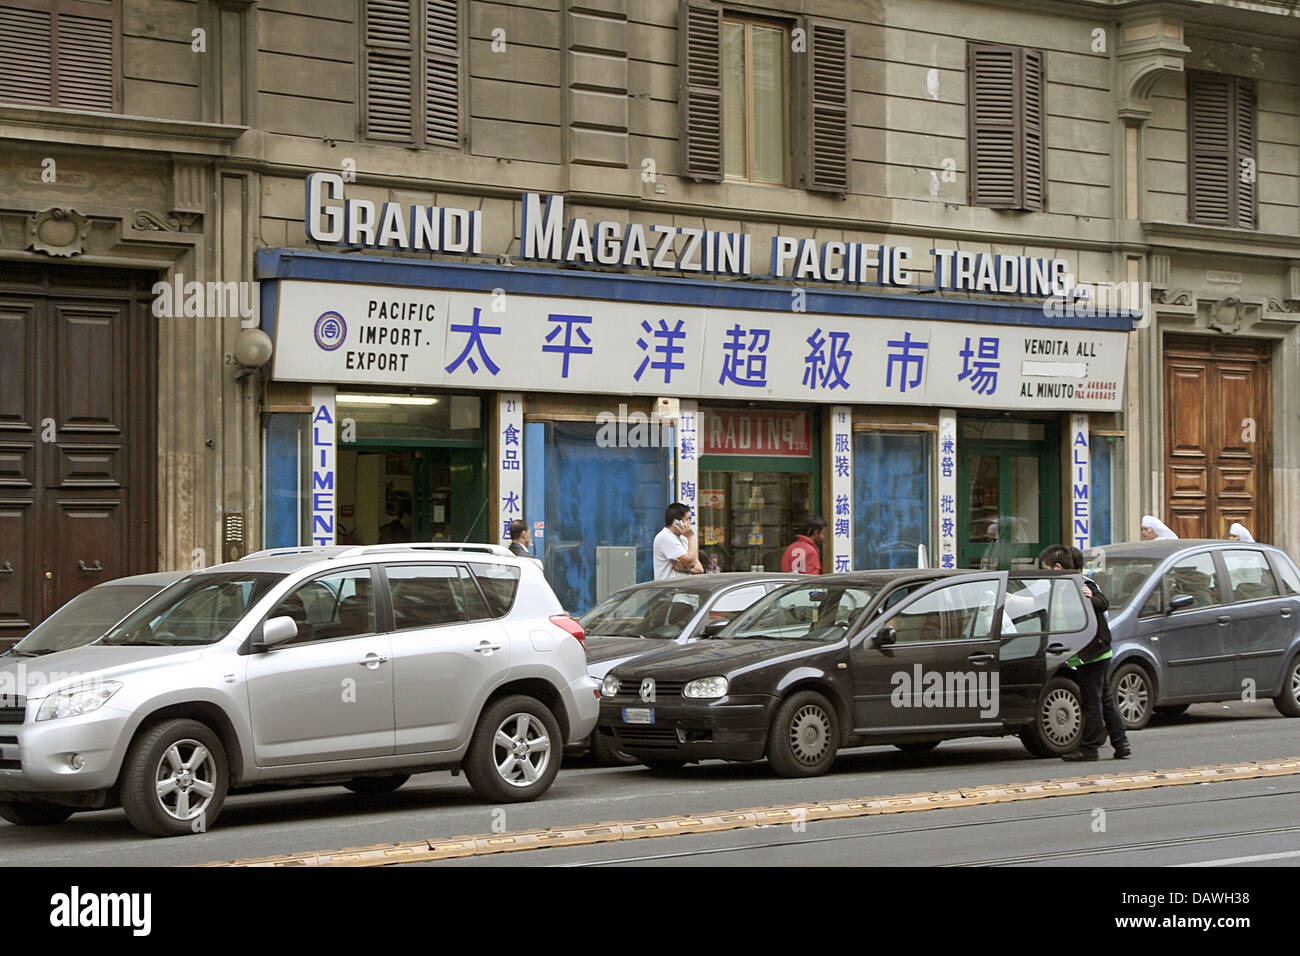 The picture shows the Chinese Pacific Import Export shop in Rome, Italy, 15 April 2007. Photo: Lars Halbauer - Stock Image